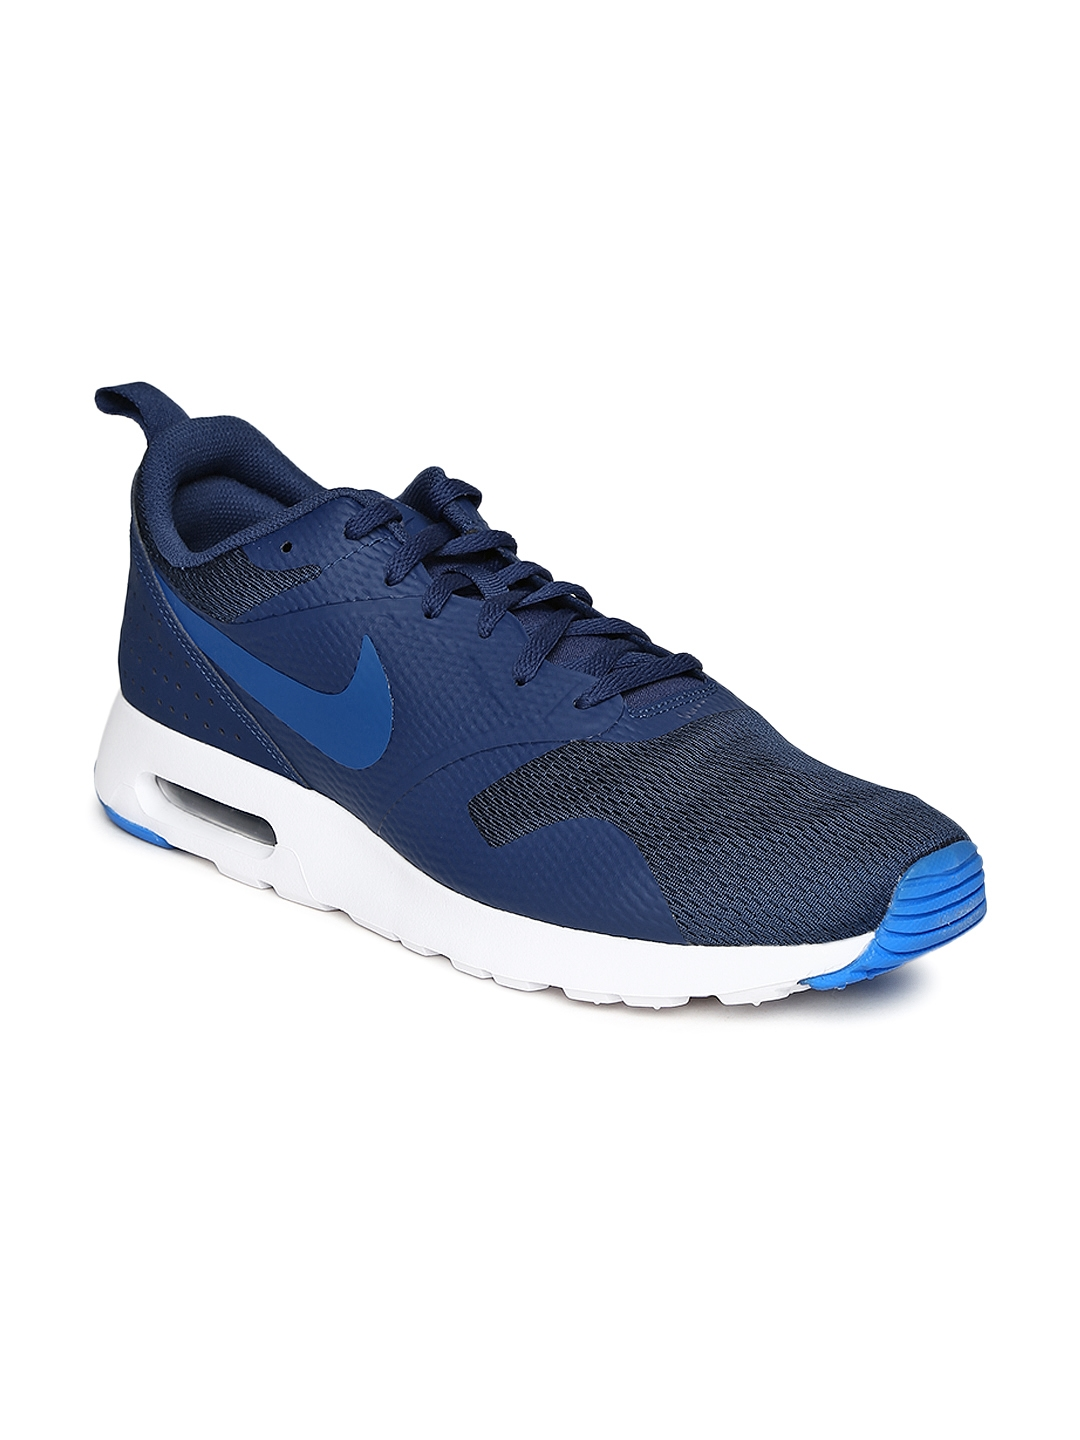 ec40736f52 11450939786646-Nike-Men-Casual-Shoes-1611450939786262-1.jpg